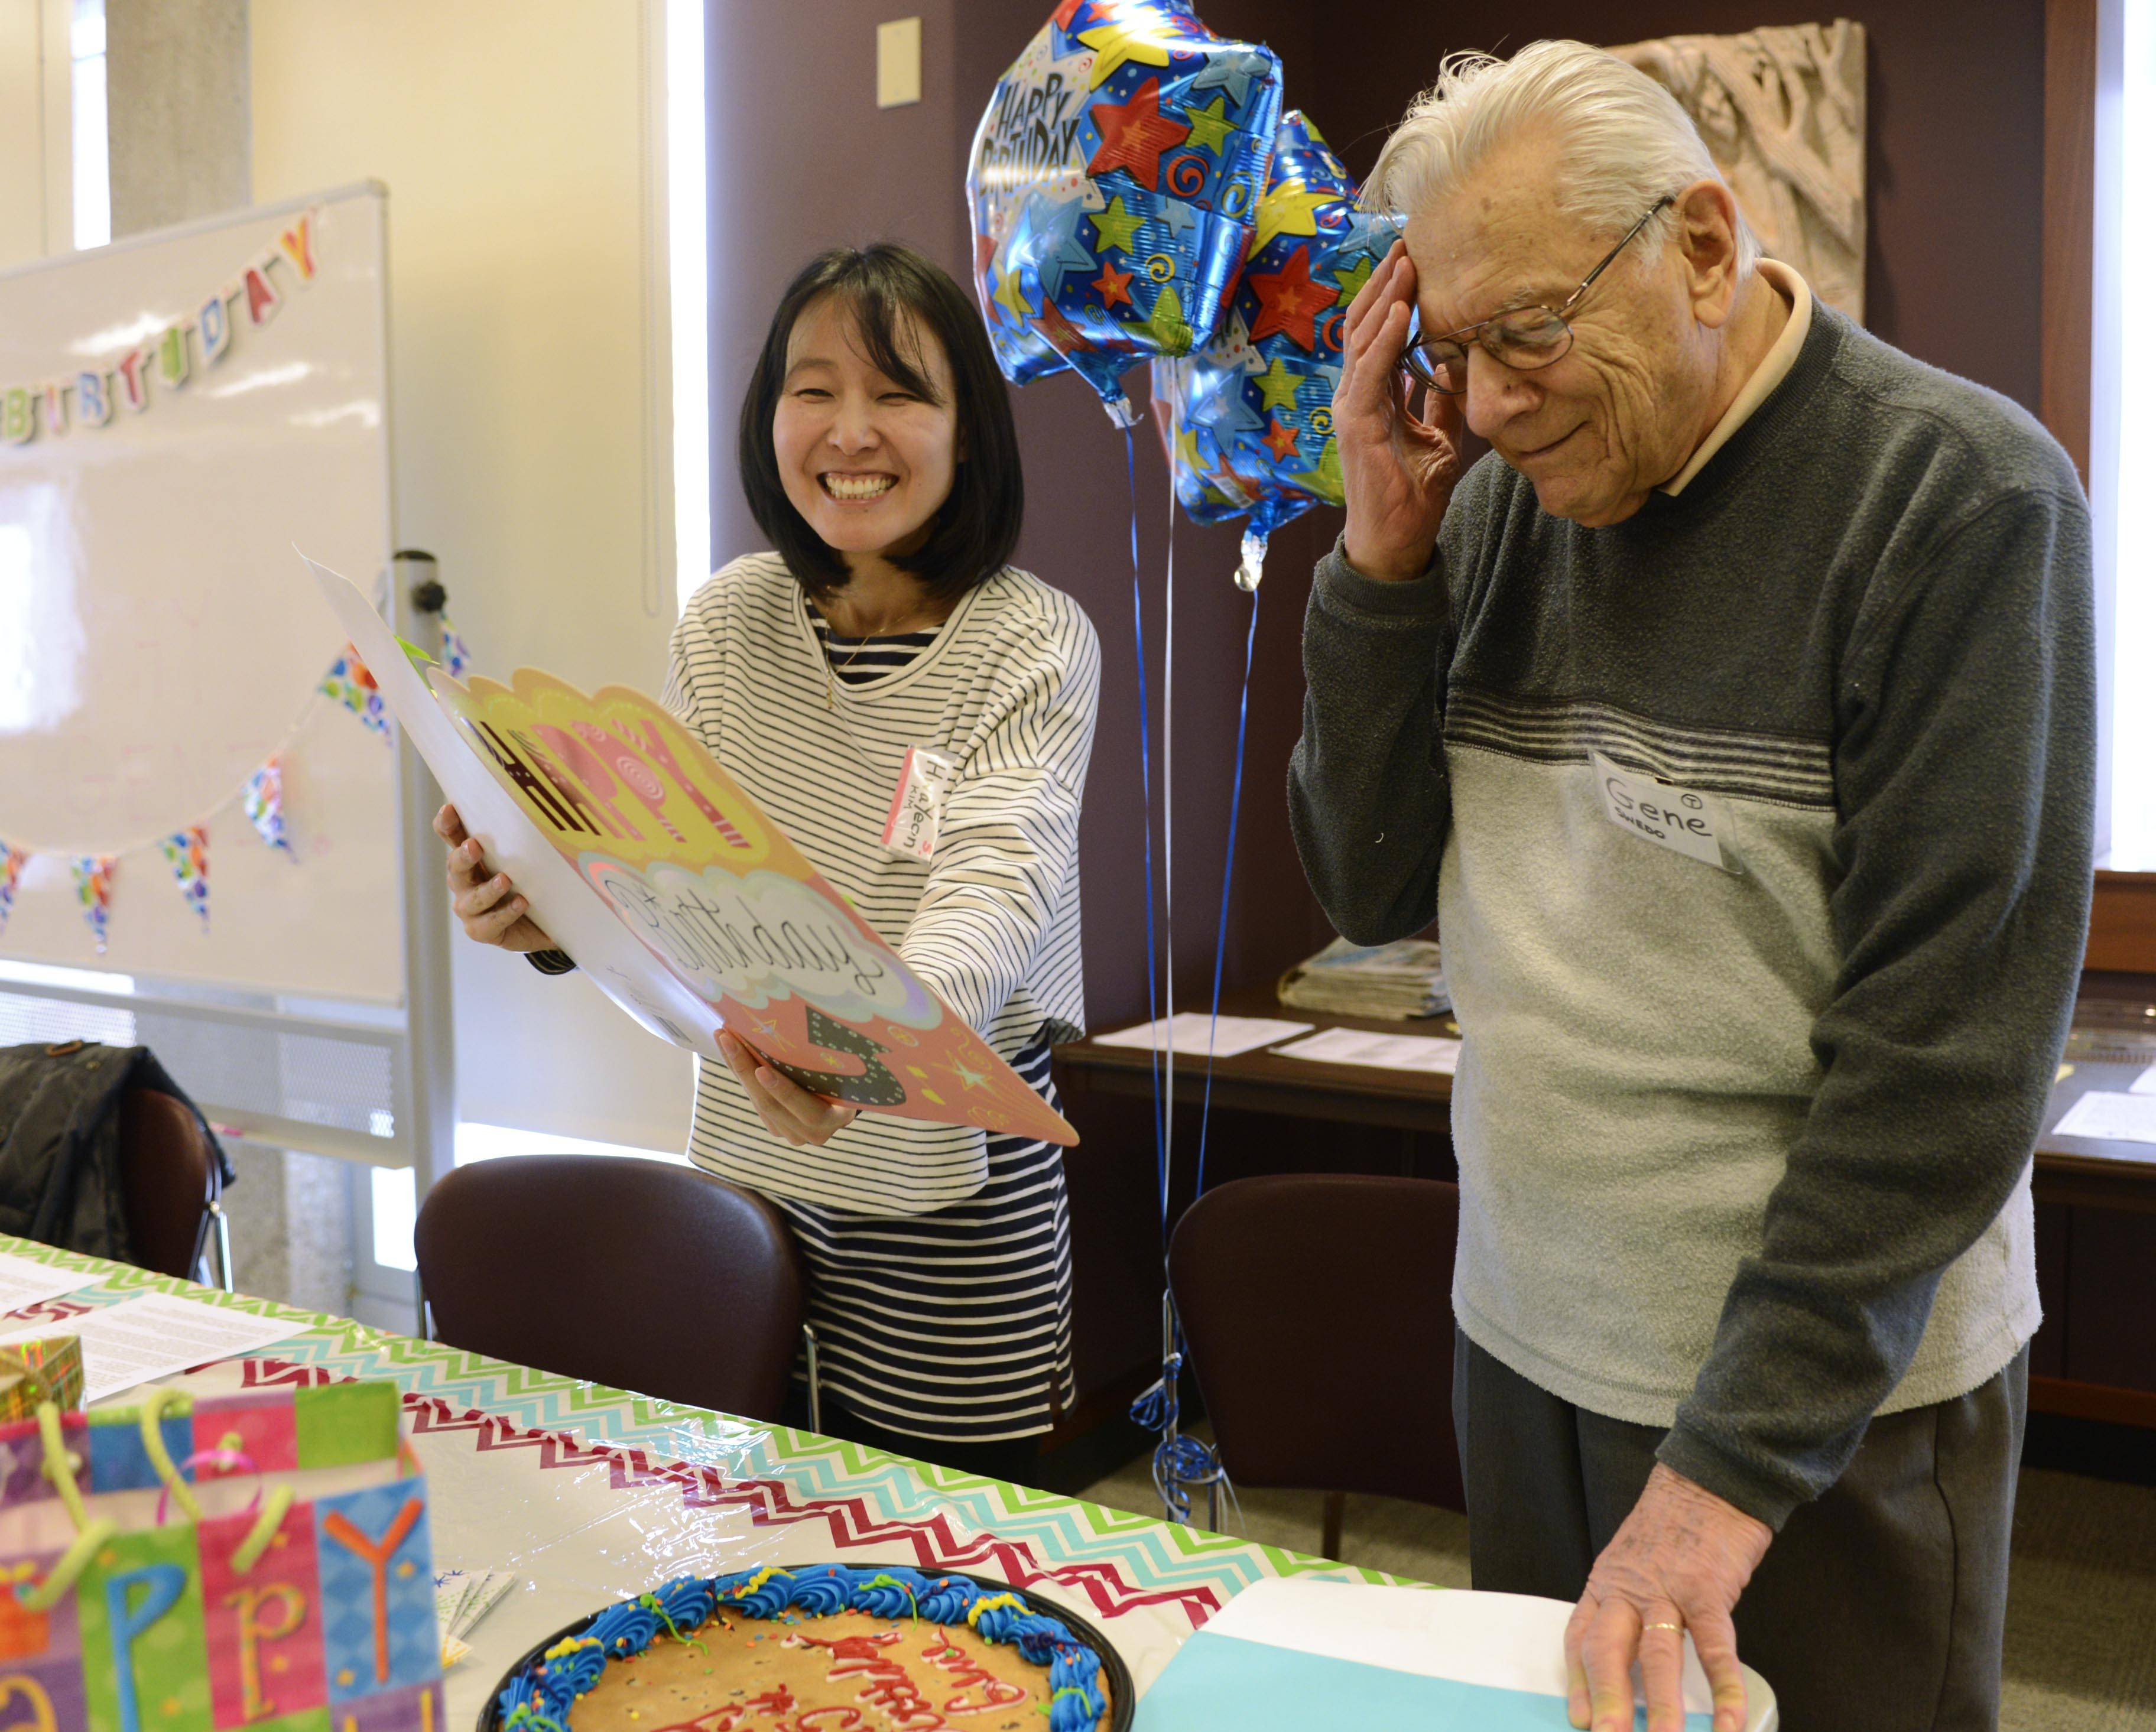 Joe Lewnard/jlewnard@dailyherald.comEnglish as a Second Language student Hwa Yeon Kim, of Buffalo Grove, holds a birthday card during a surprise party for 95-year old Mount Prospect volunteer Gene Swedo at the Mount Prospect Public Library Friday.